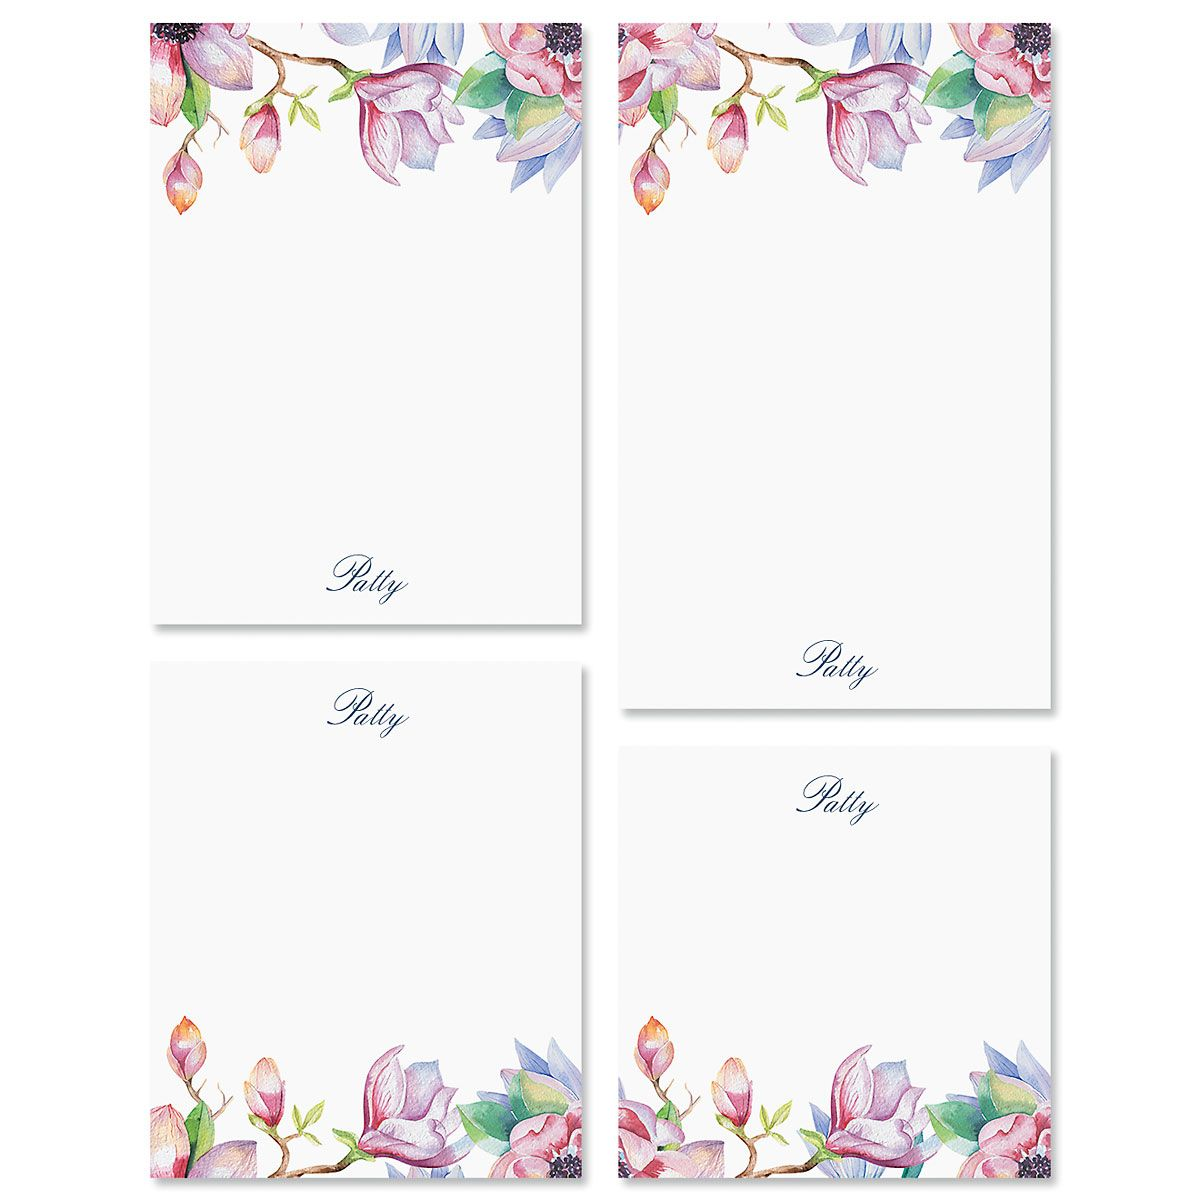 Magnolia Personalized Notepad Sets